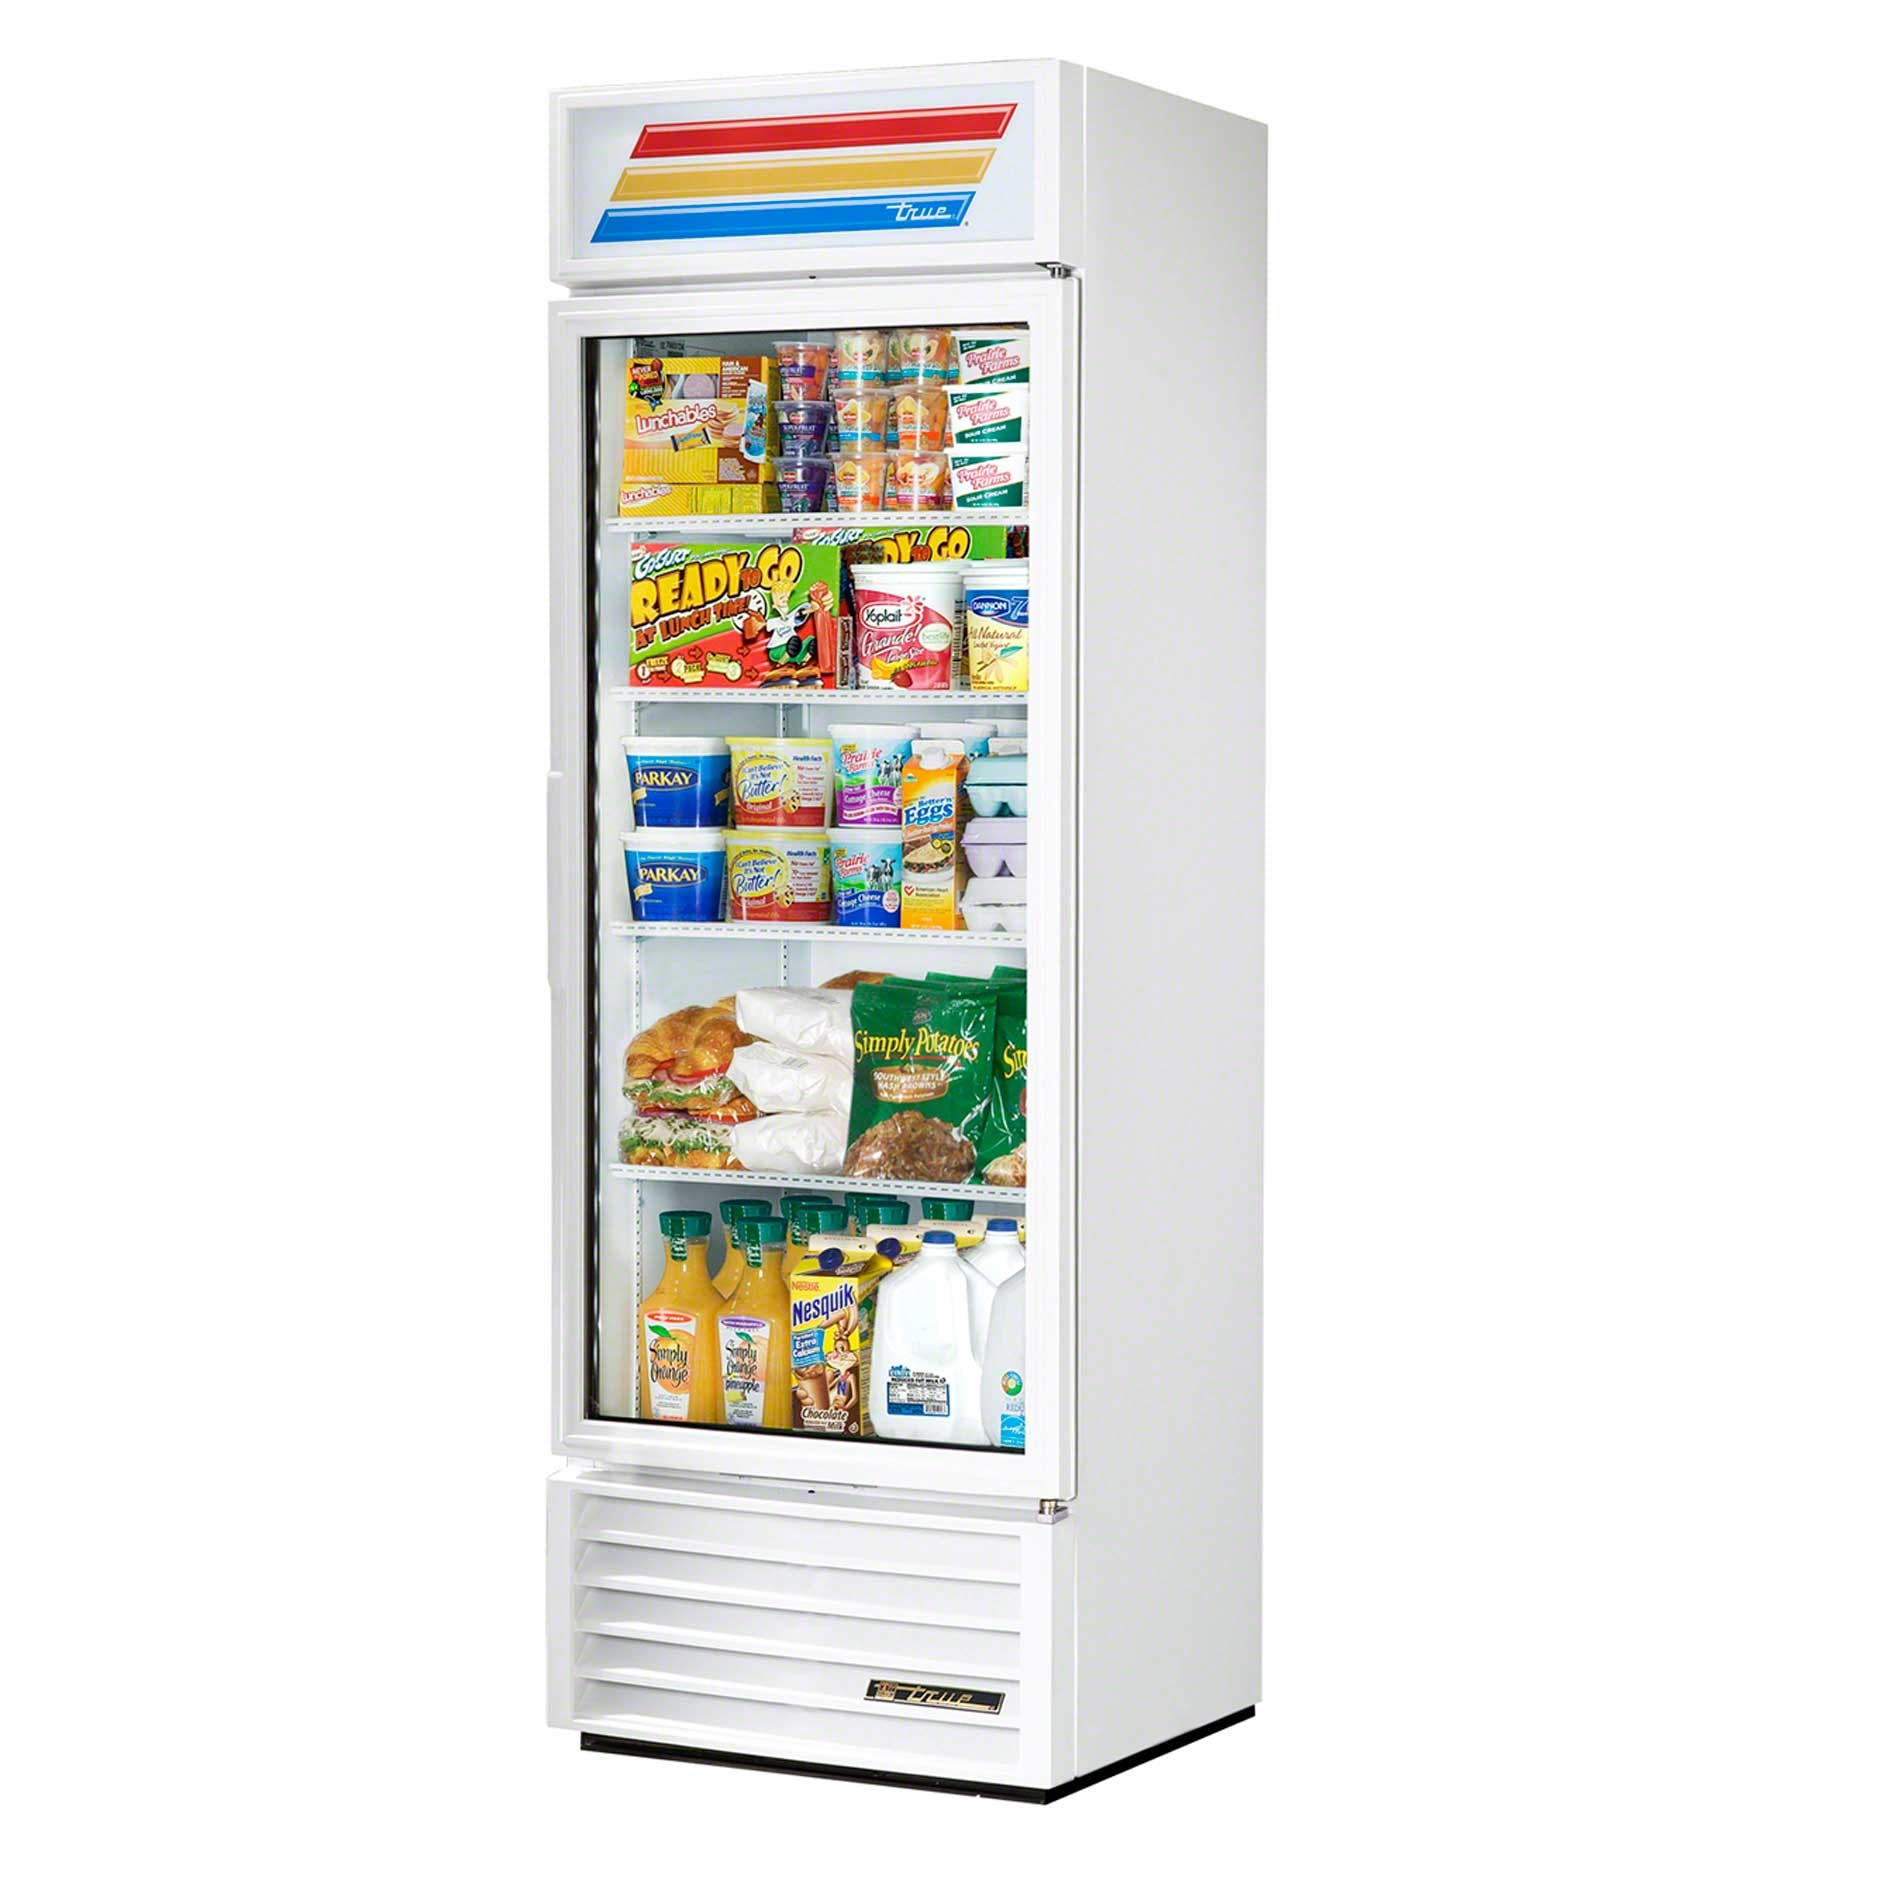 "True - GDM-19T-LD WHT WHTTRM 27"" Swing Glass Door Merchandiser Refrigerator LED Commercial refrigerator sold by Food Service Warehouse"